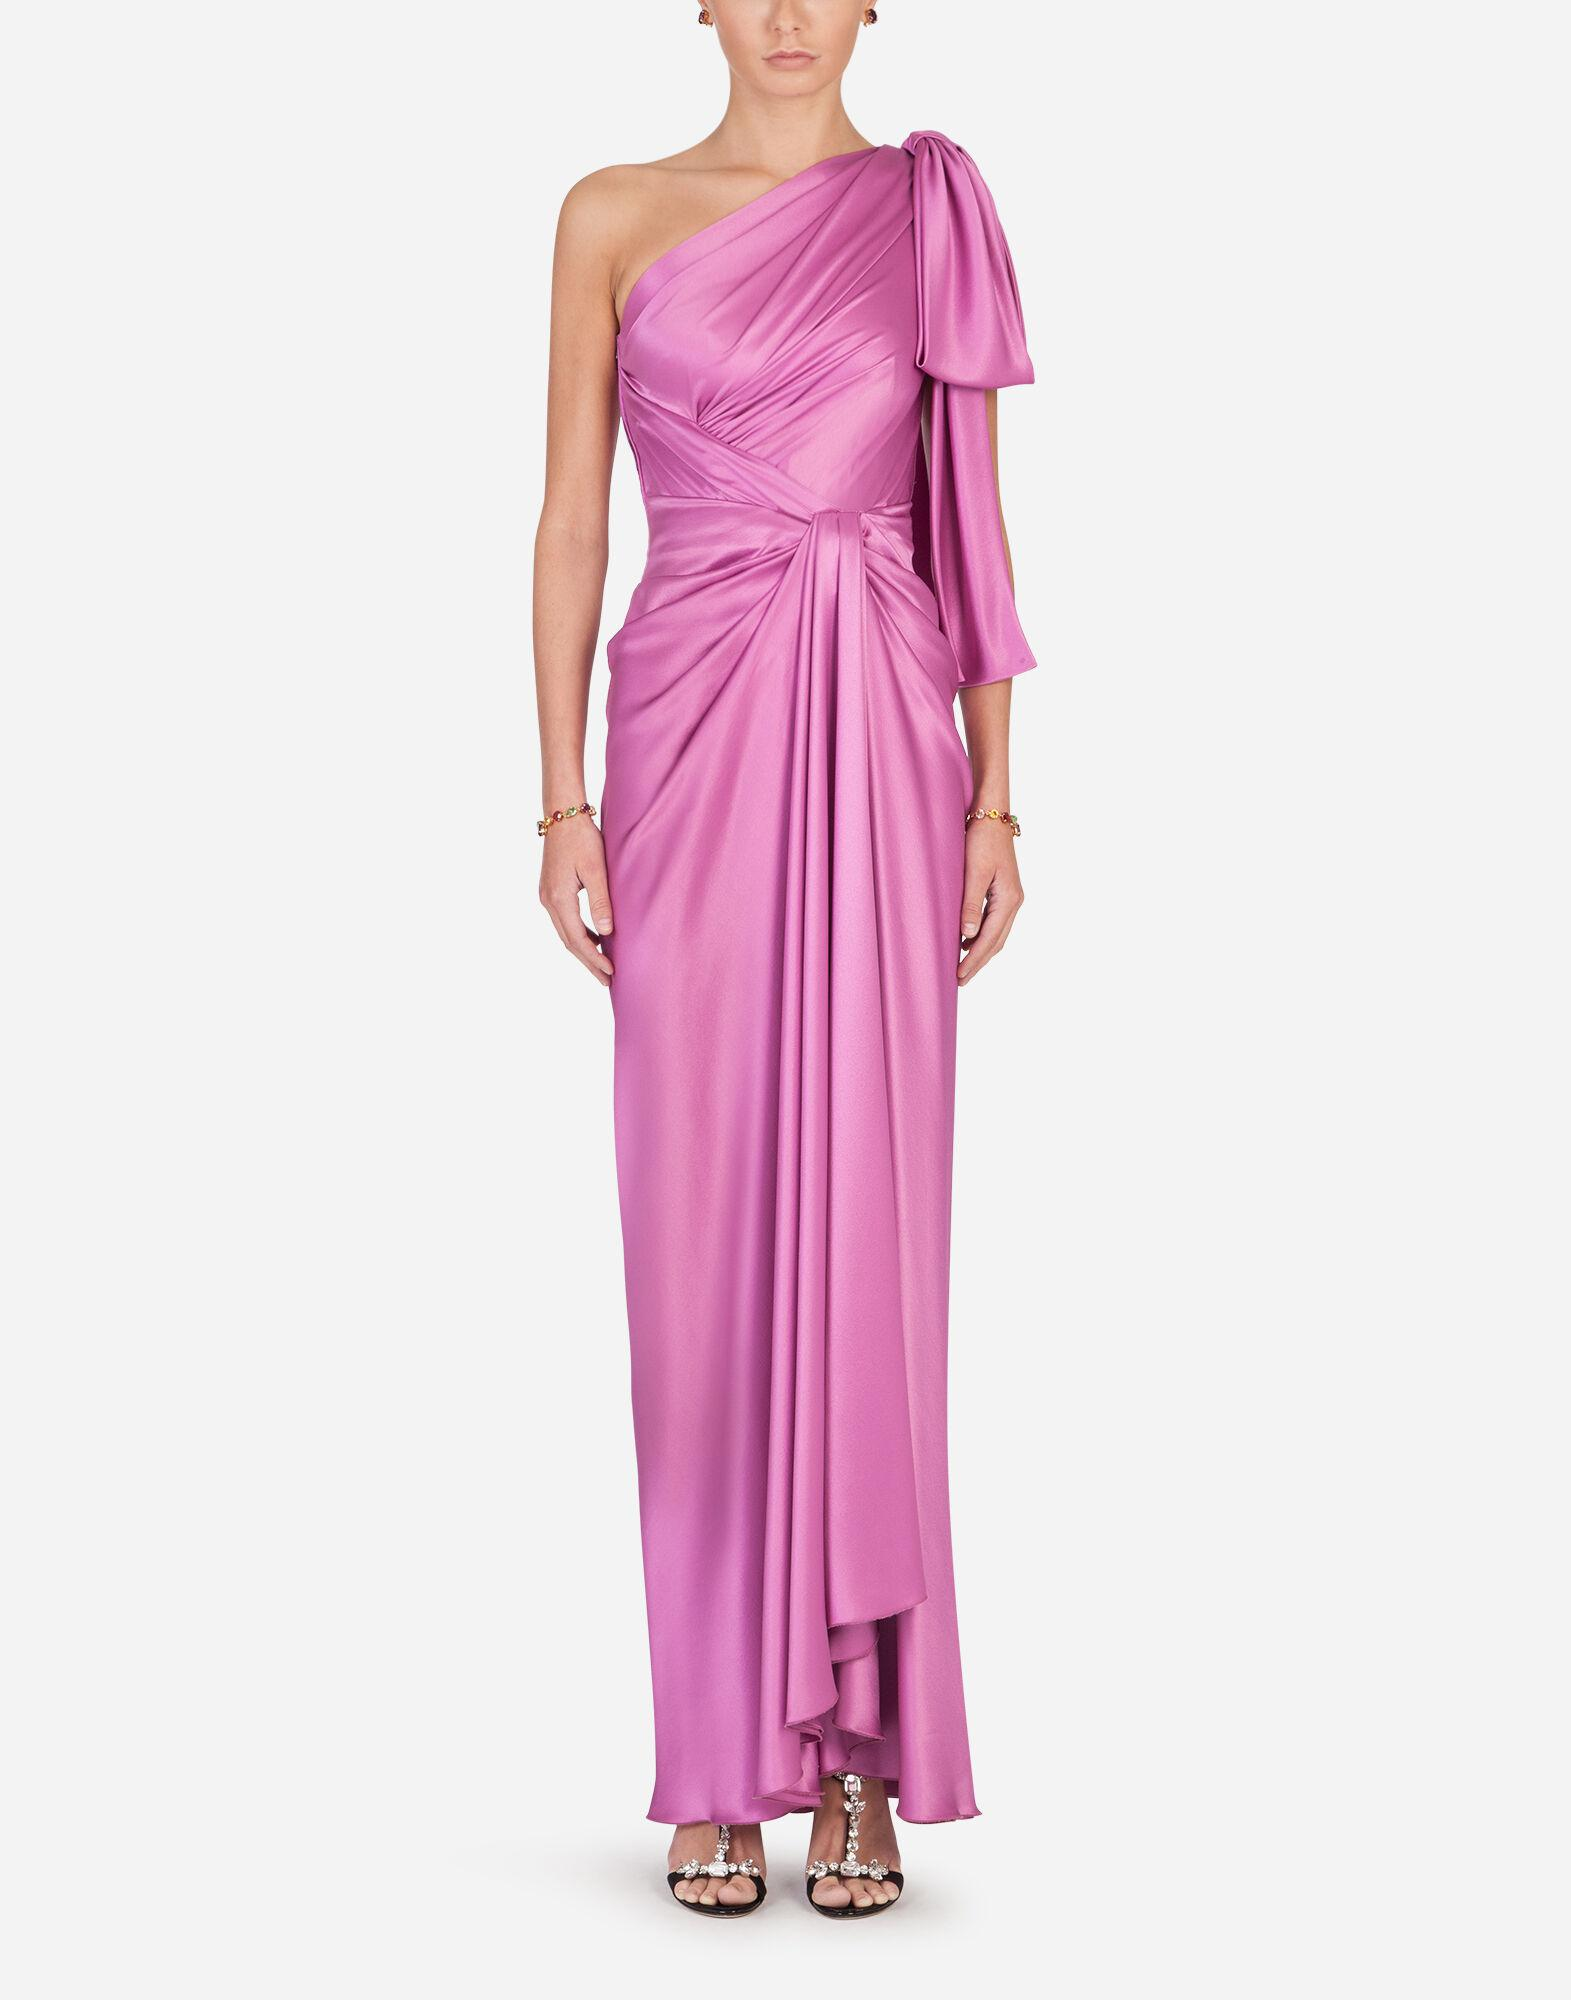 Long one-shoulder silk dress with bow detail